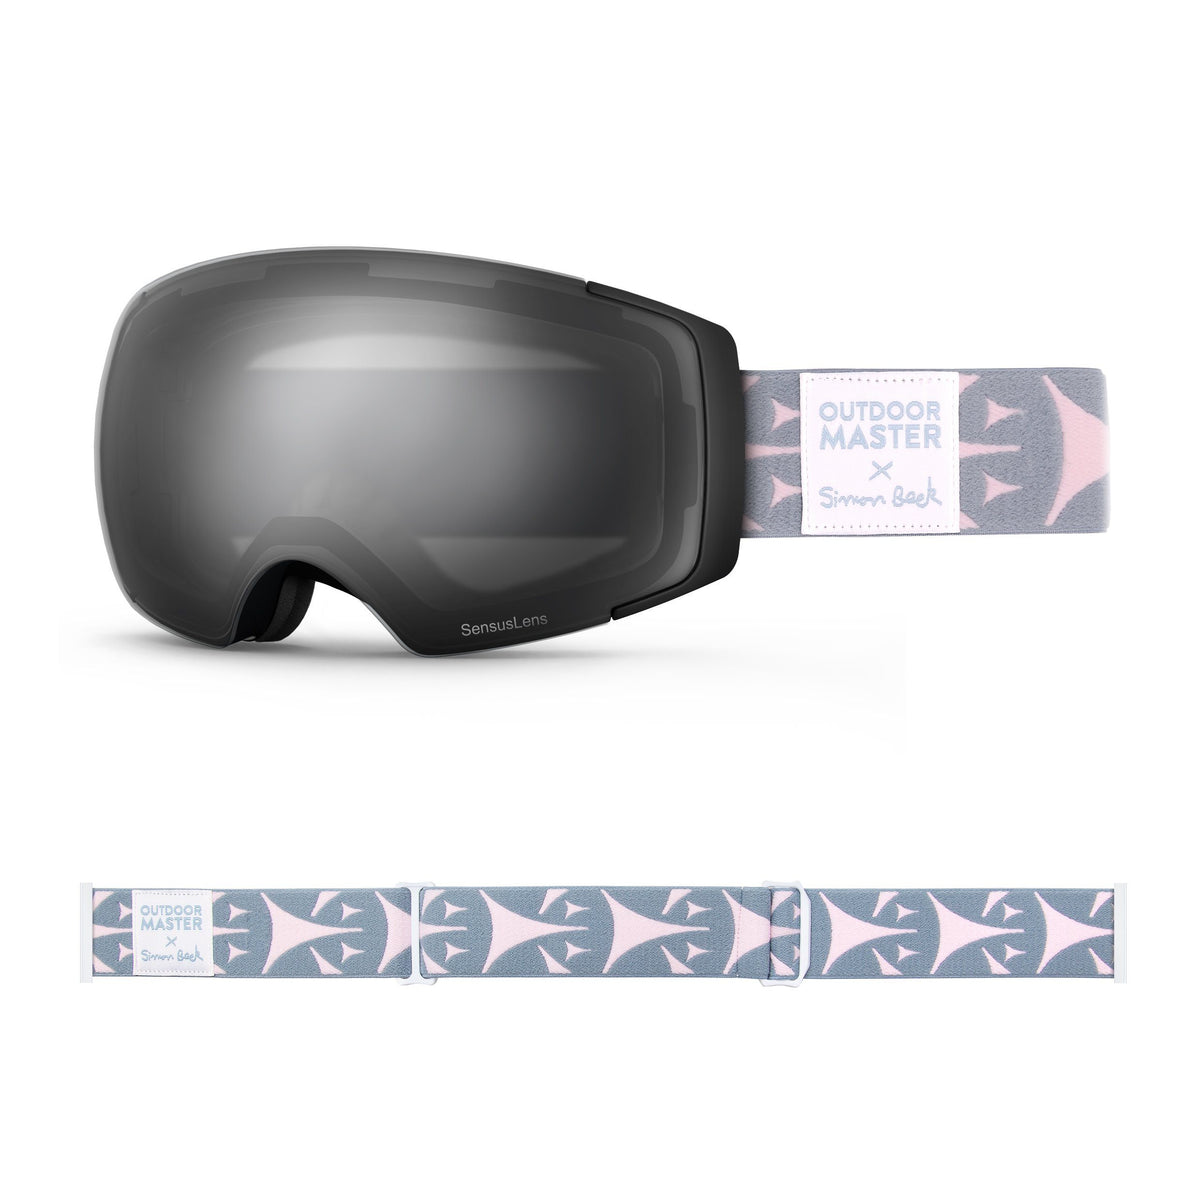 OutdoorMaster x Simon Beck Ski Goggles Pro Series - Snowshoeing Art Limited Edition OutdoorMaster GreenLens VLT 10% TAC Grey With REVO Silver Polarized Bouncy Triangles